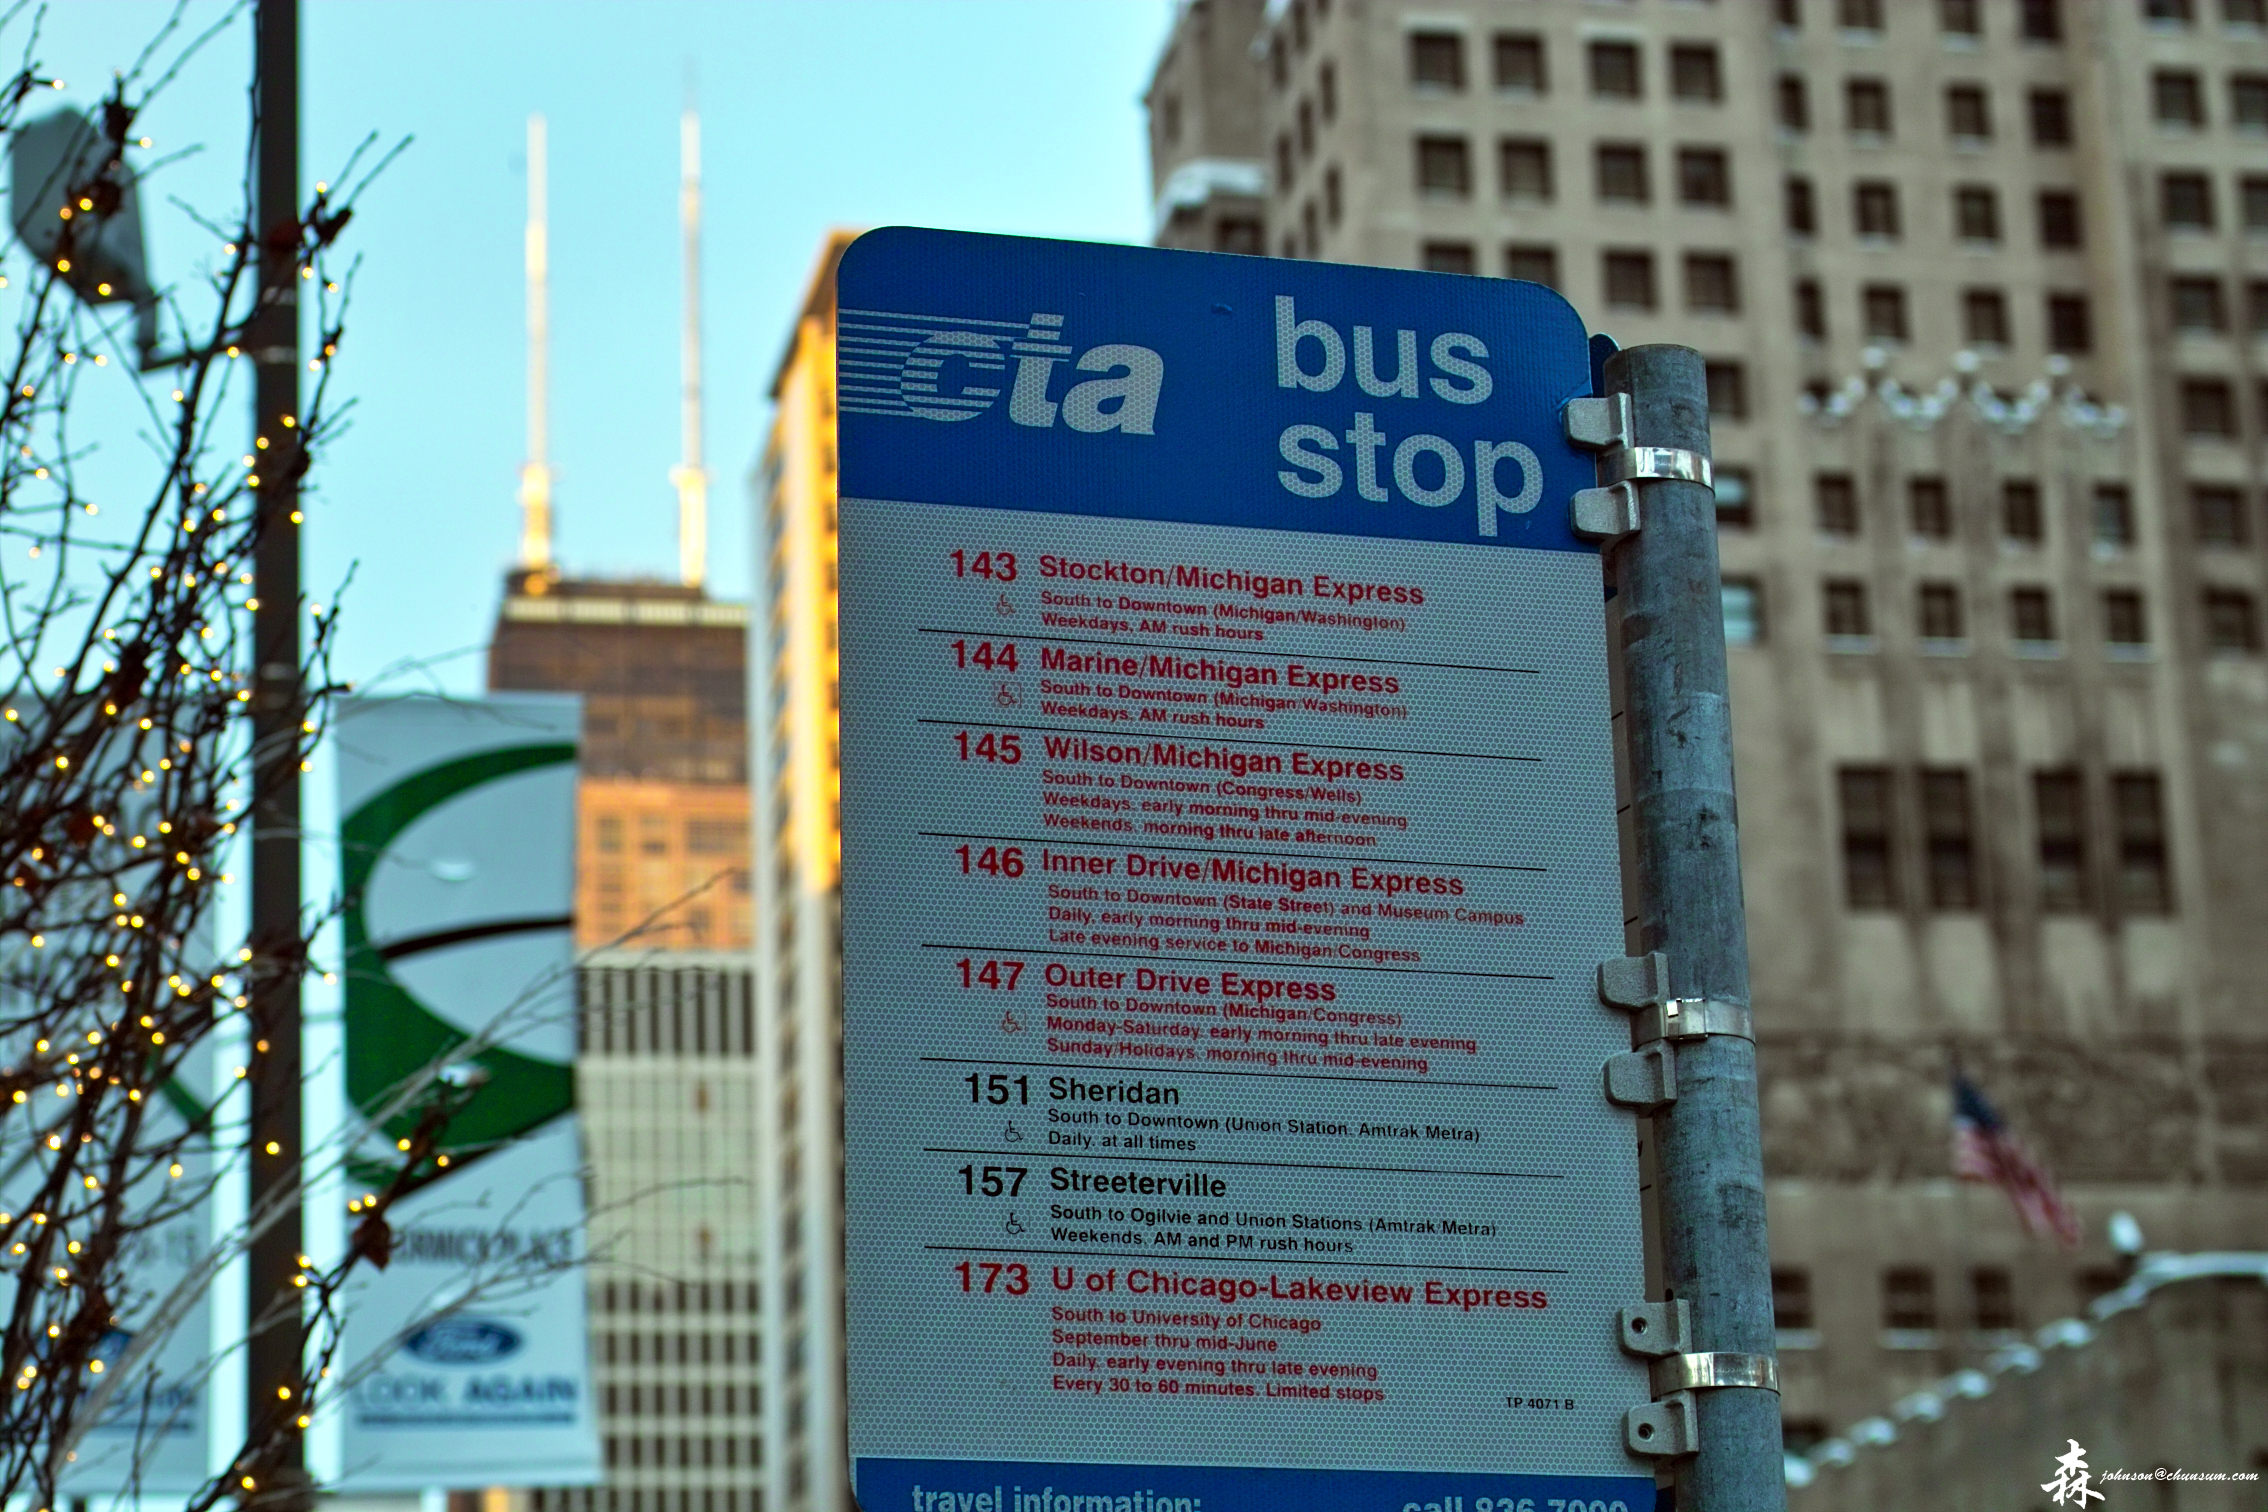 CTA Bus Stop Schedule photo - The Sigma Users Group